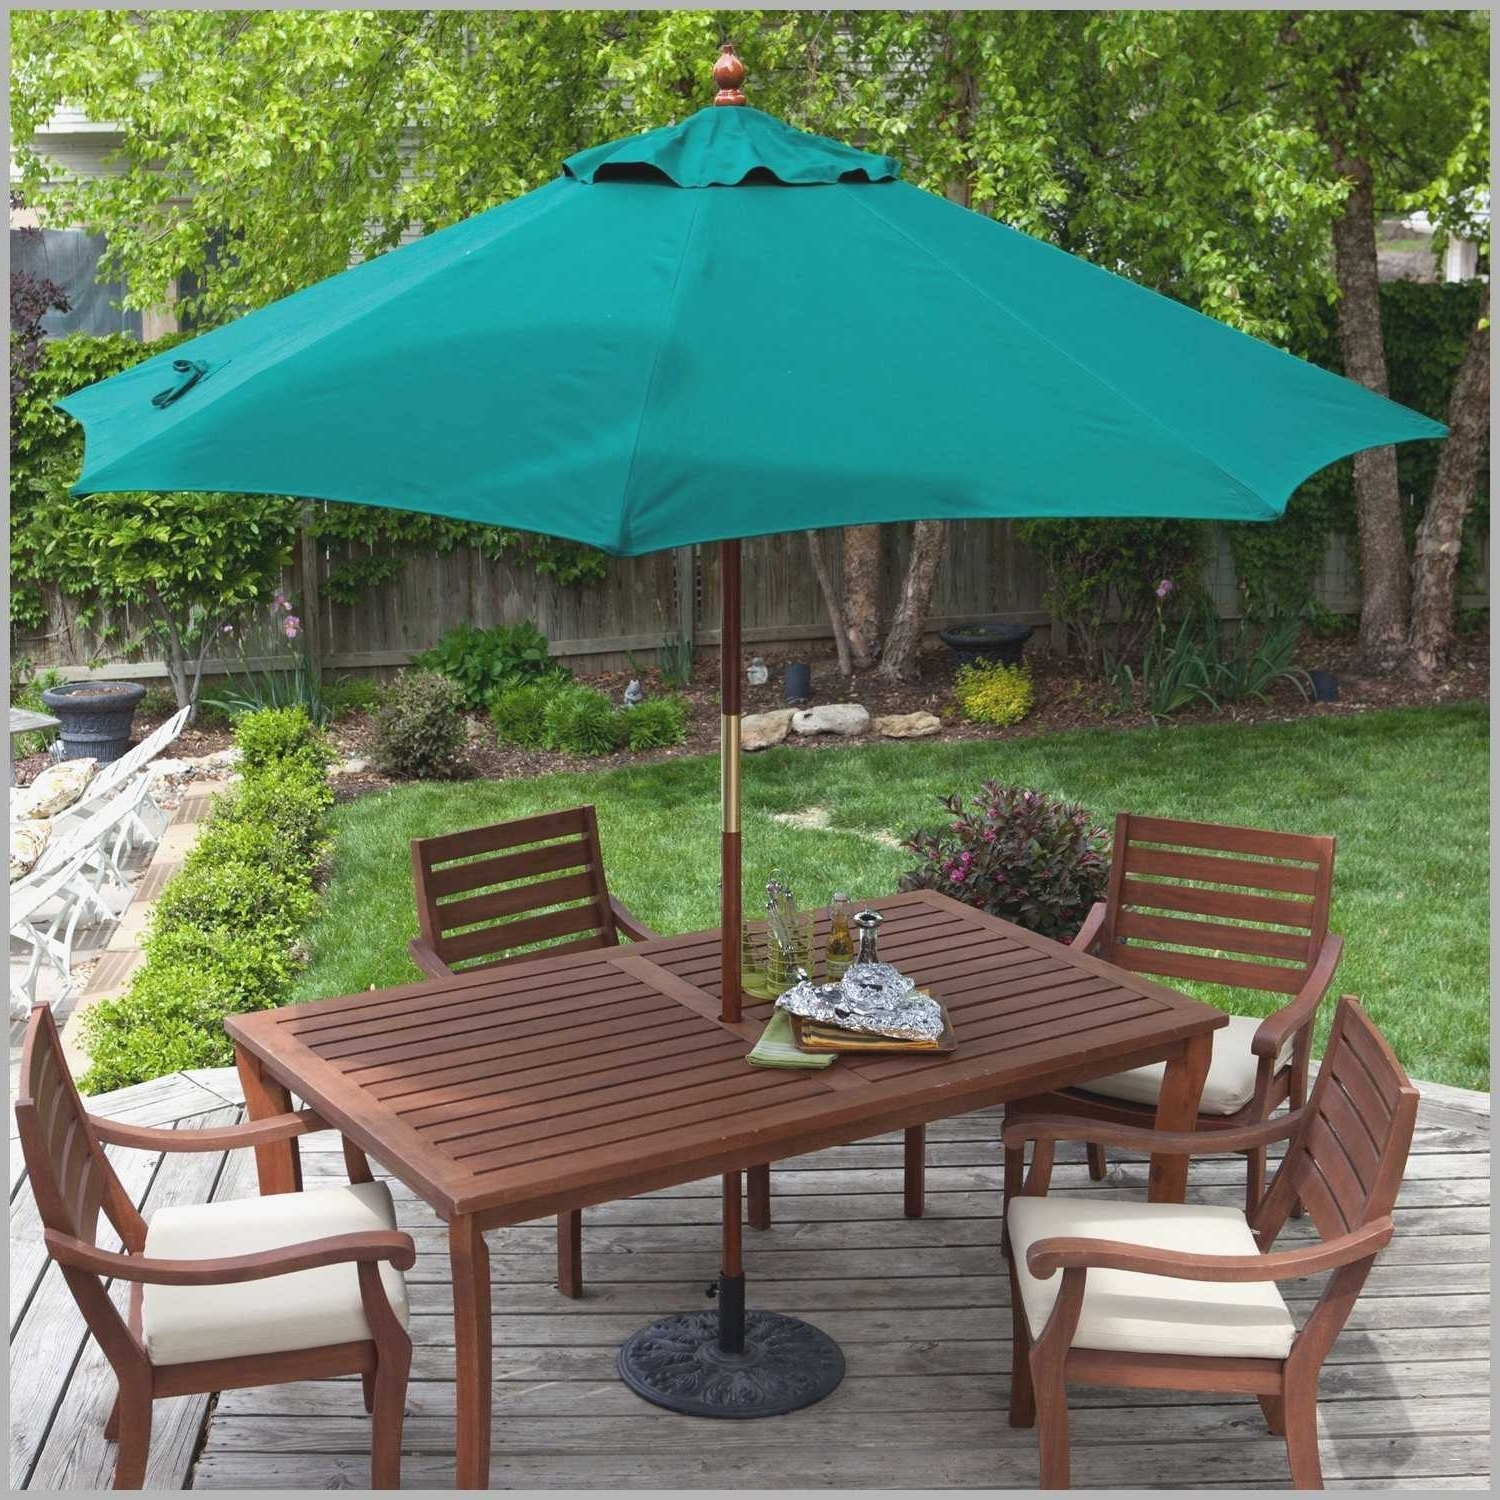 Patio Tables With Umbrella Hole Pertaining To Popular Patio Table: Patio Table Umbrella Flange Patio Table Umbrella Hole (View 9 of 20)